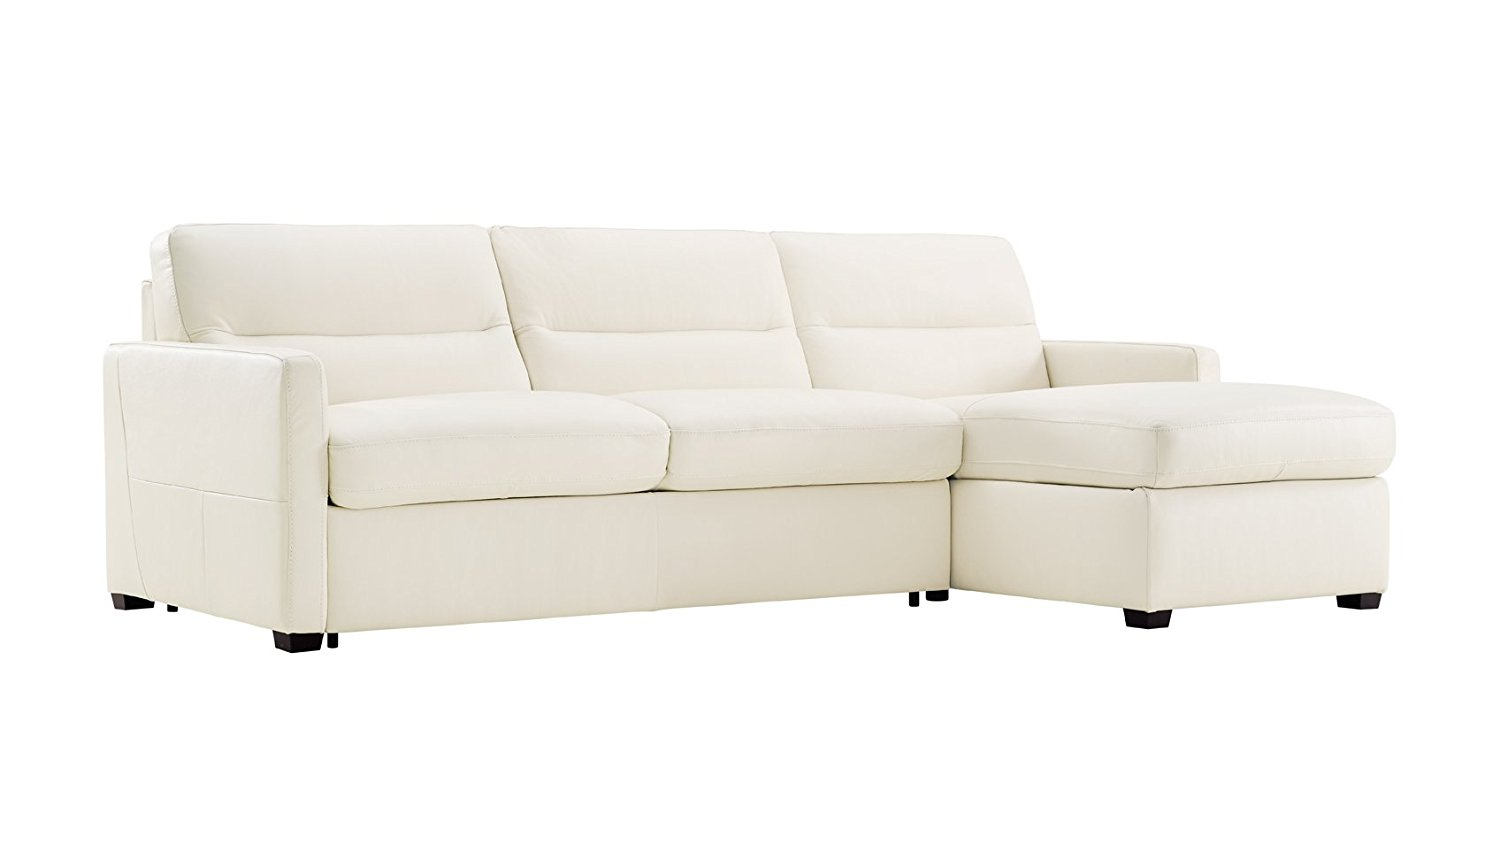 Natuzzi Editions Galileo Cream Leather Two Piece Sleeper Sectional with Storage Chaise